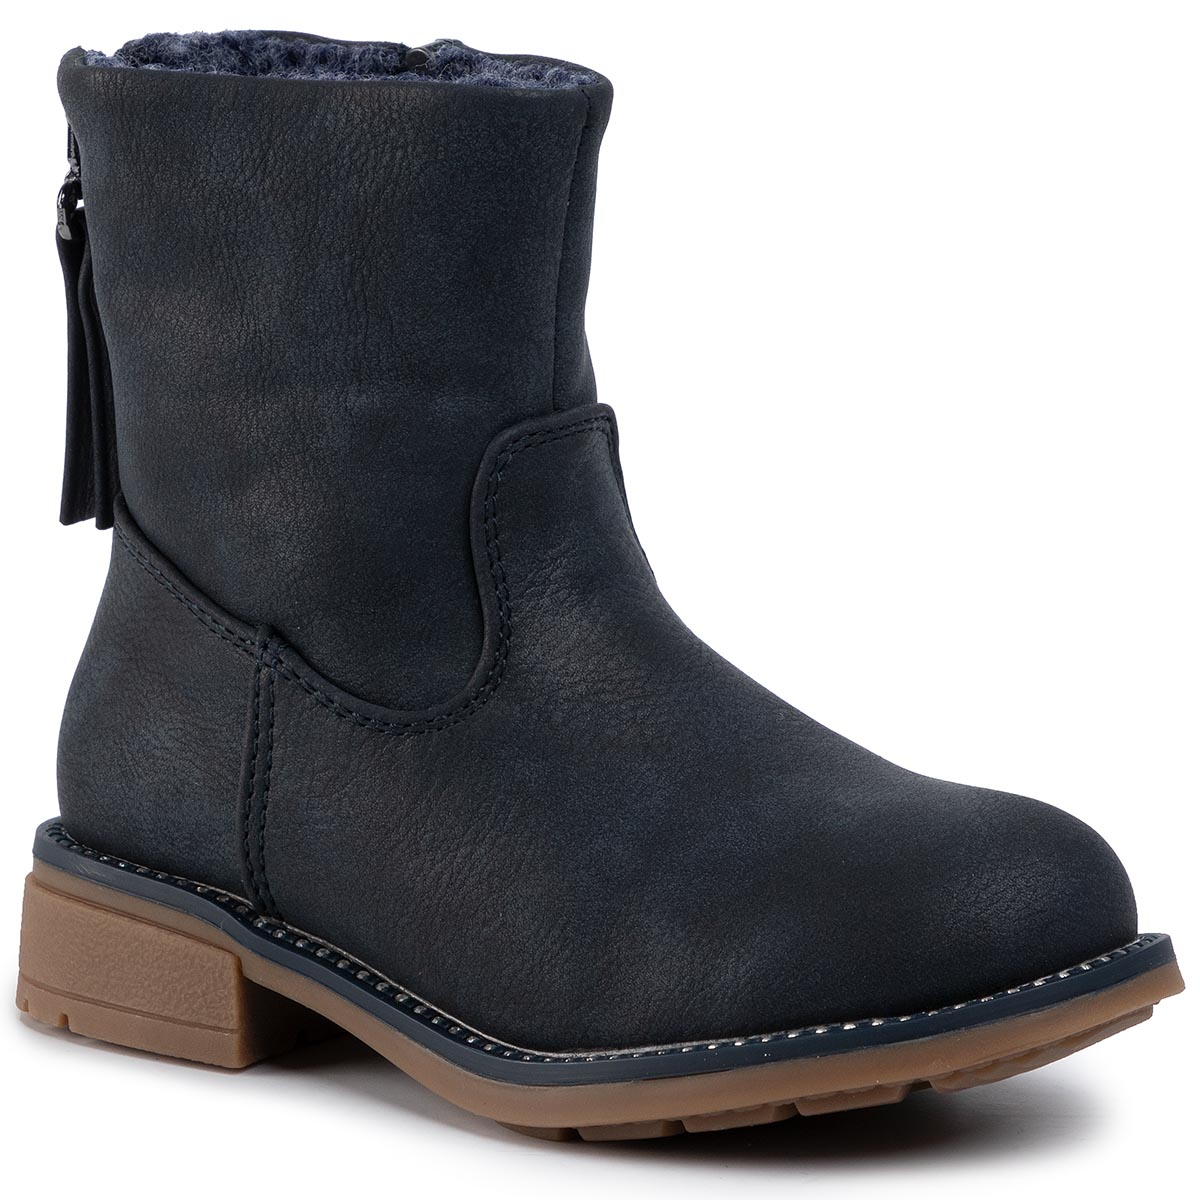 Cizme Nelli Blu - Cs2920-06 Denim imagine epantofi.ro 2021